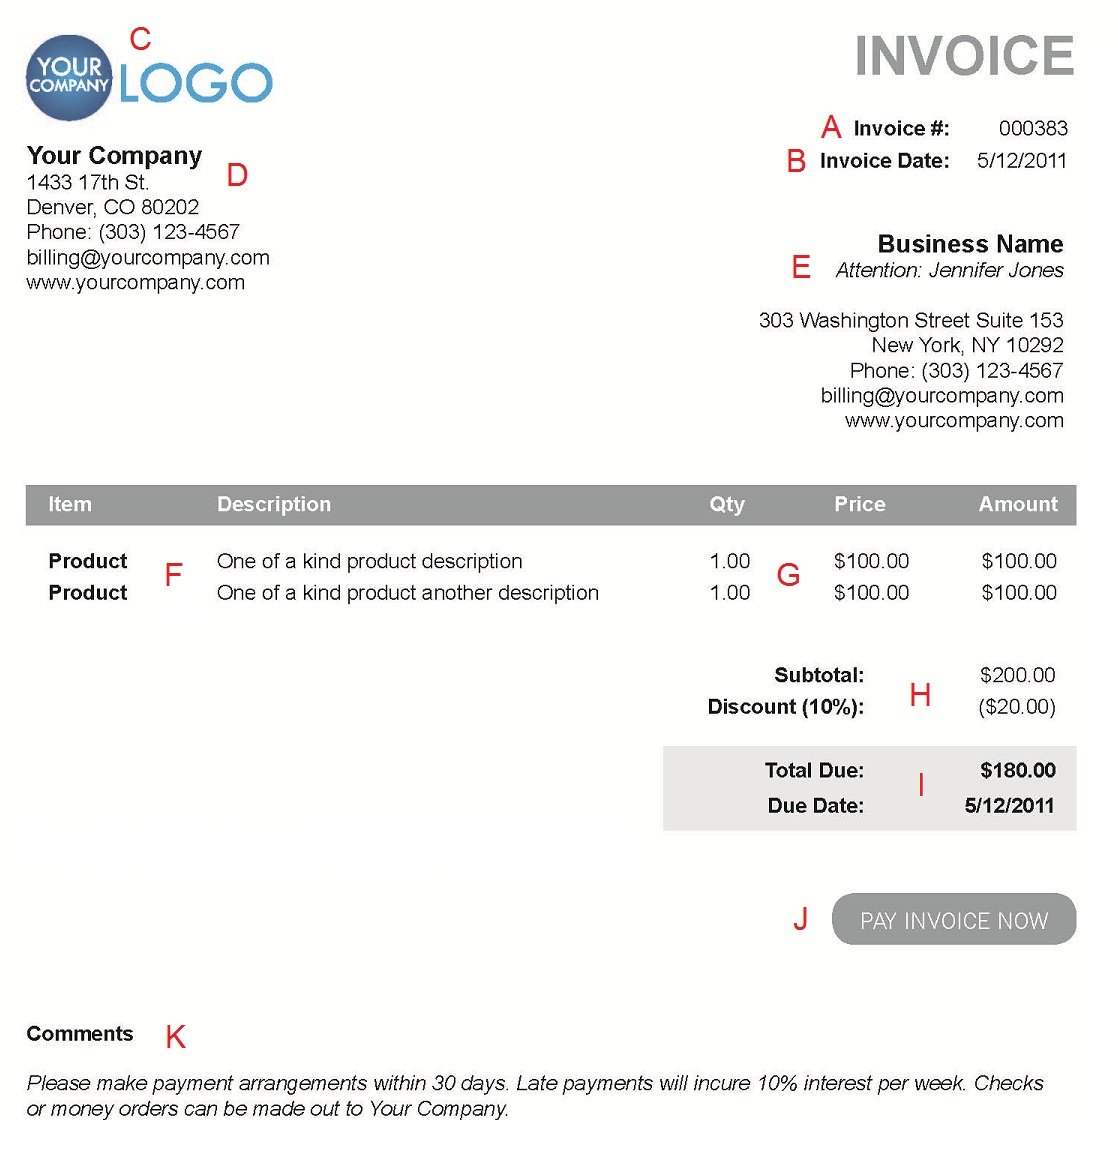 Coolmathgamesus  Surprising The  Different Sections Of An Electronic Payment Invoice With Foxy A  With Delectable Online Receipt For Lic Premium Also Western Union Money Transfer Receipt Sample In Addition Money Receipt Format Doc And Neat Receipts Customer Service As Well As Format Of Money Receipt Additionally Lic Premium Paid Receipt From Paysimplecom With Coolmathgamesus  Foxy The  Different Sections Of An Electronic Payment Invoice With Delectable A  And Surprising Online Receipt For Lic Premium Also Western Union Money Transfer Receipt Sample In Addition Money Receipt Format Doc From Paysimplecom